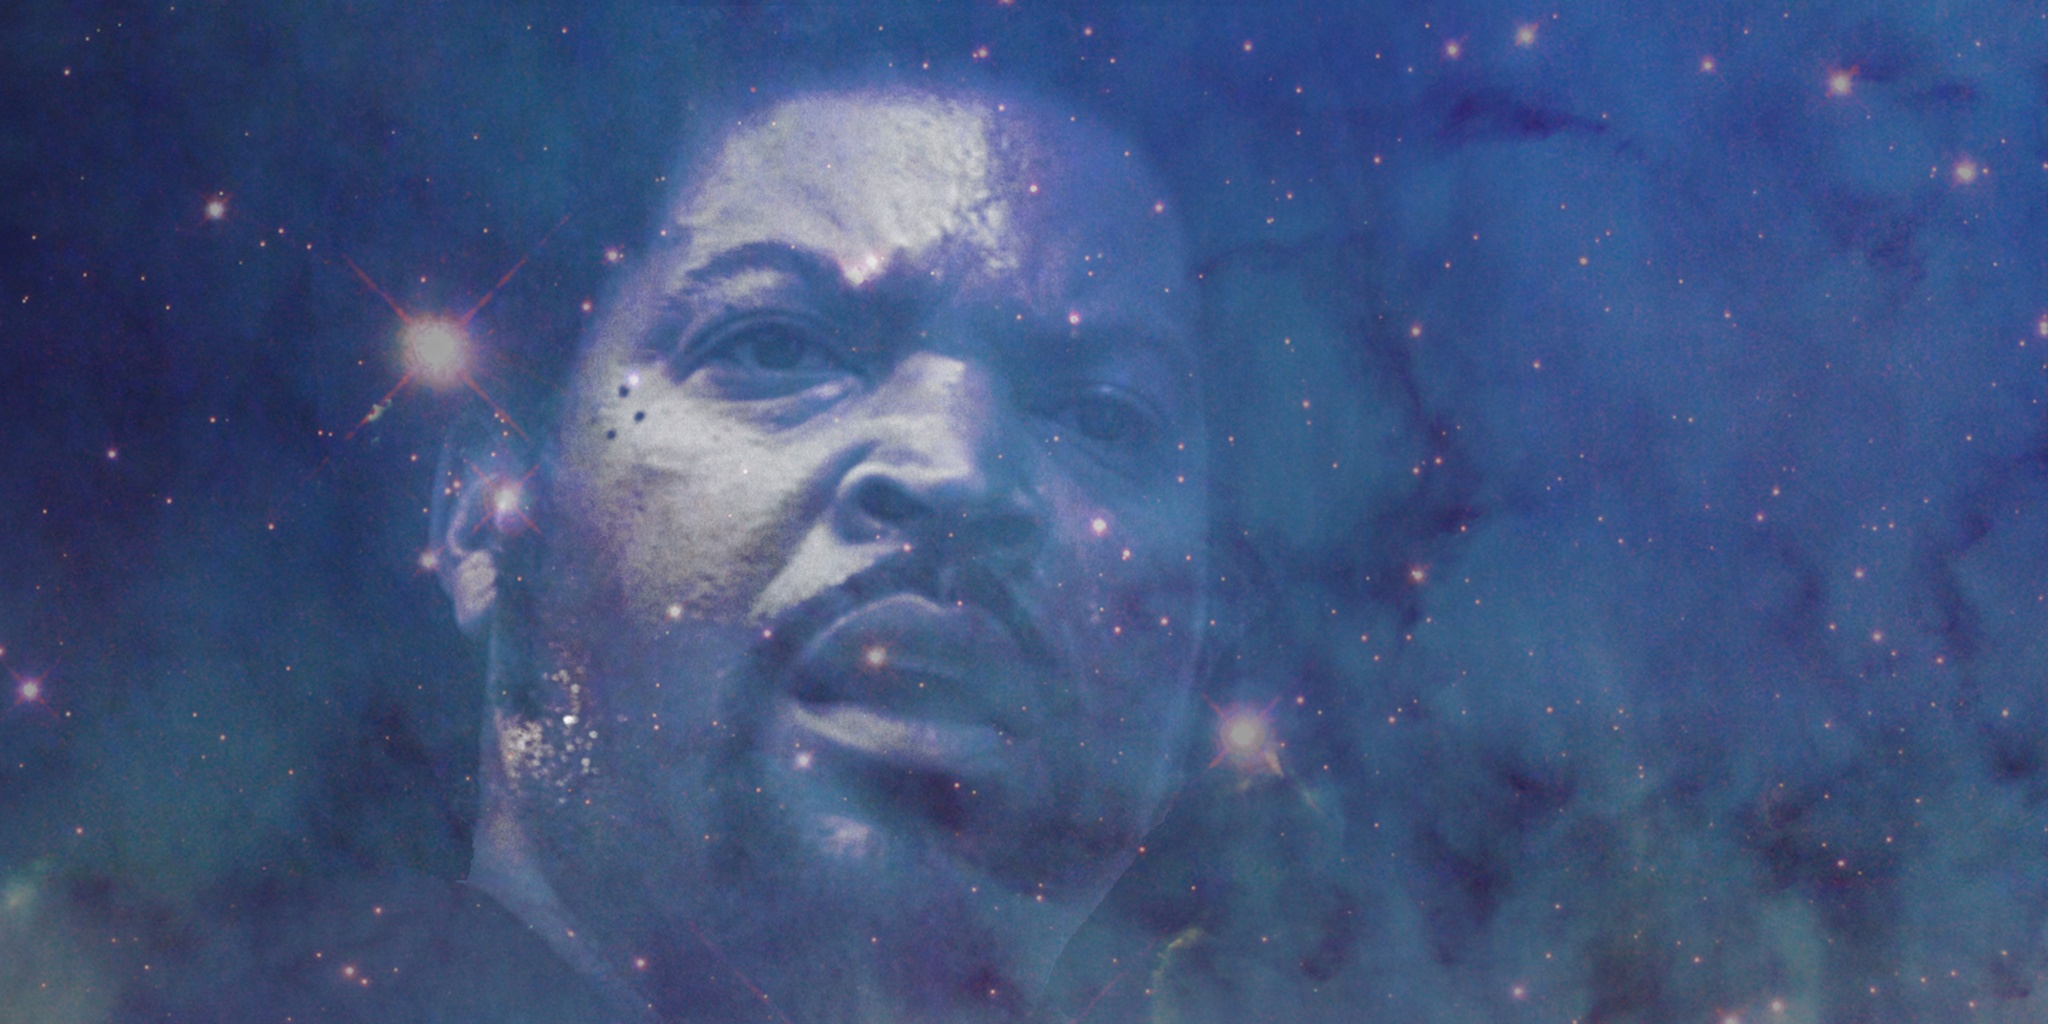 Ice Cube surveying his creation of the universe